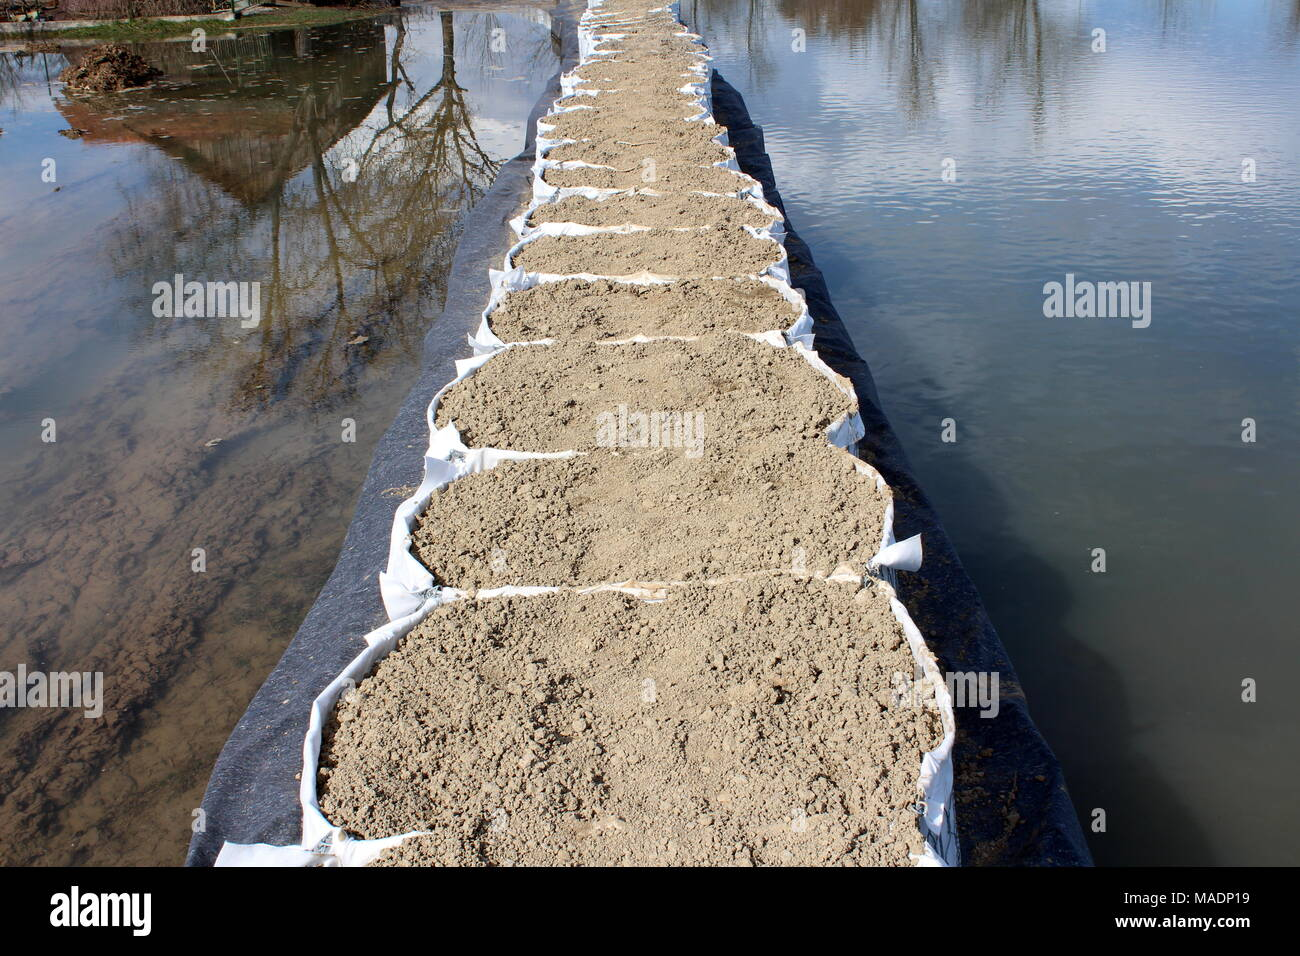 Top view of sandbox barriers flood protection with water reflections of house, trees, clouds and blue sky on cold winter day - Stock Image